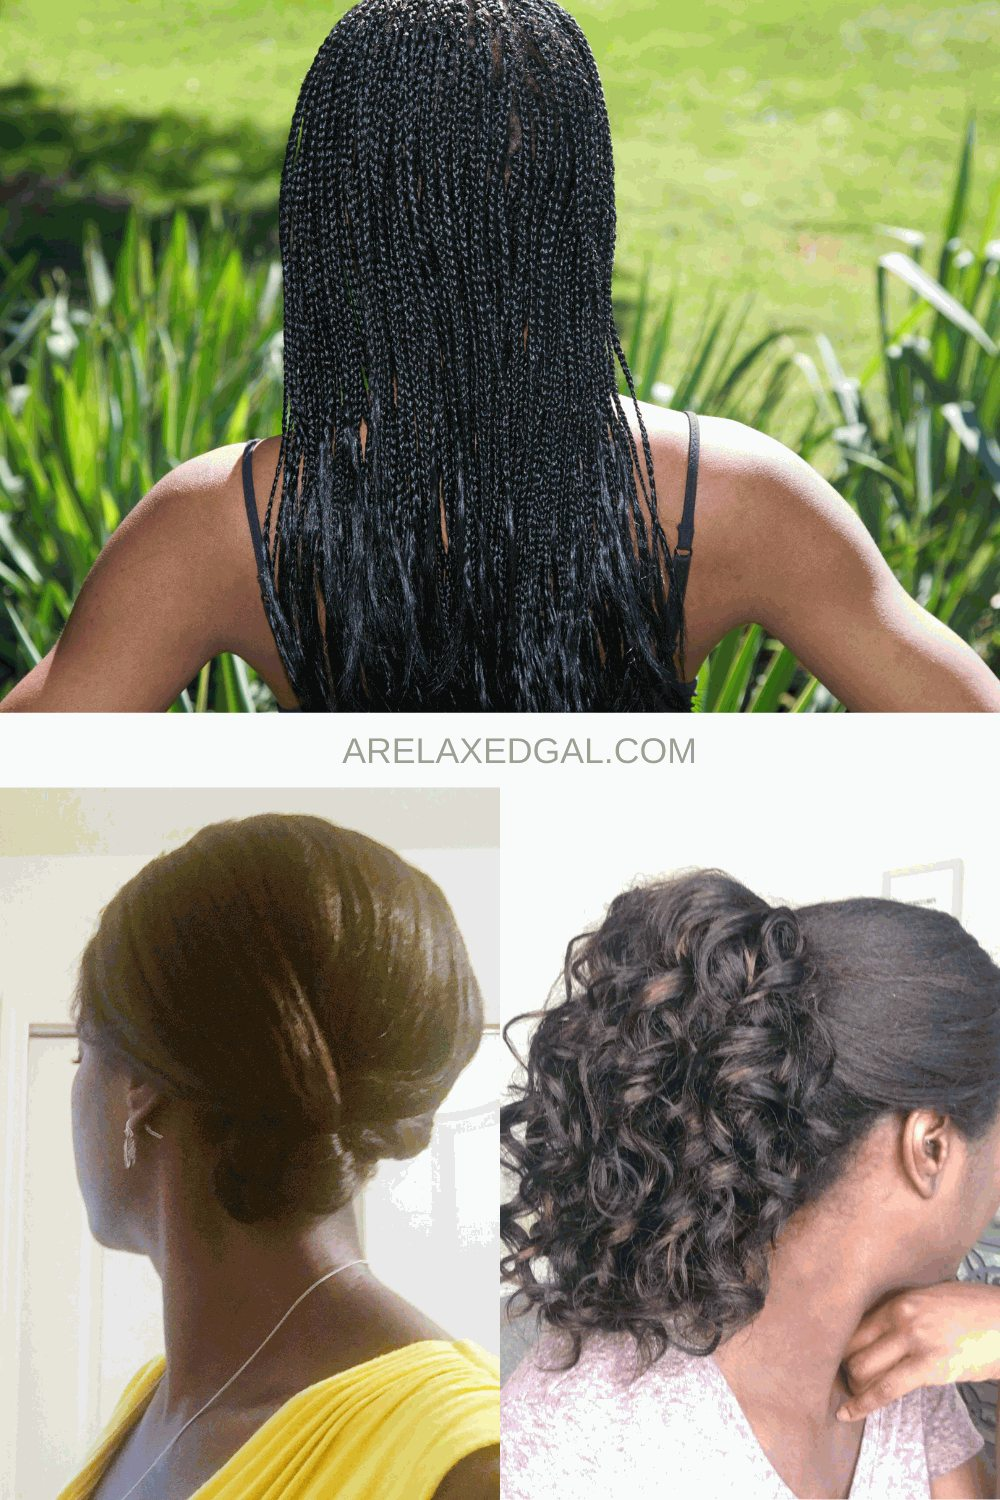 Great Summer Protective Style Ideas For Relaxed Hair   A Relaxed Gal